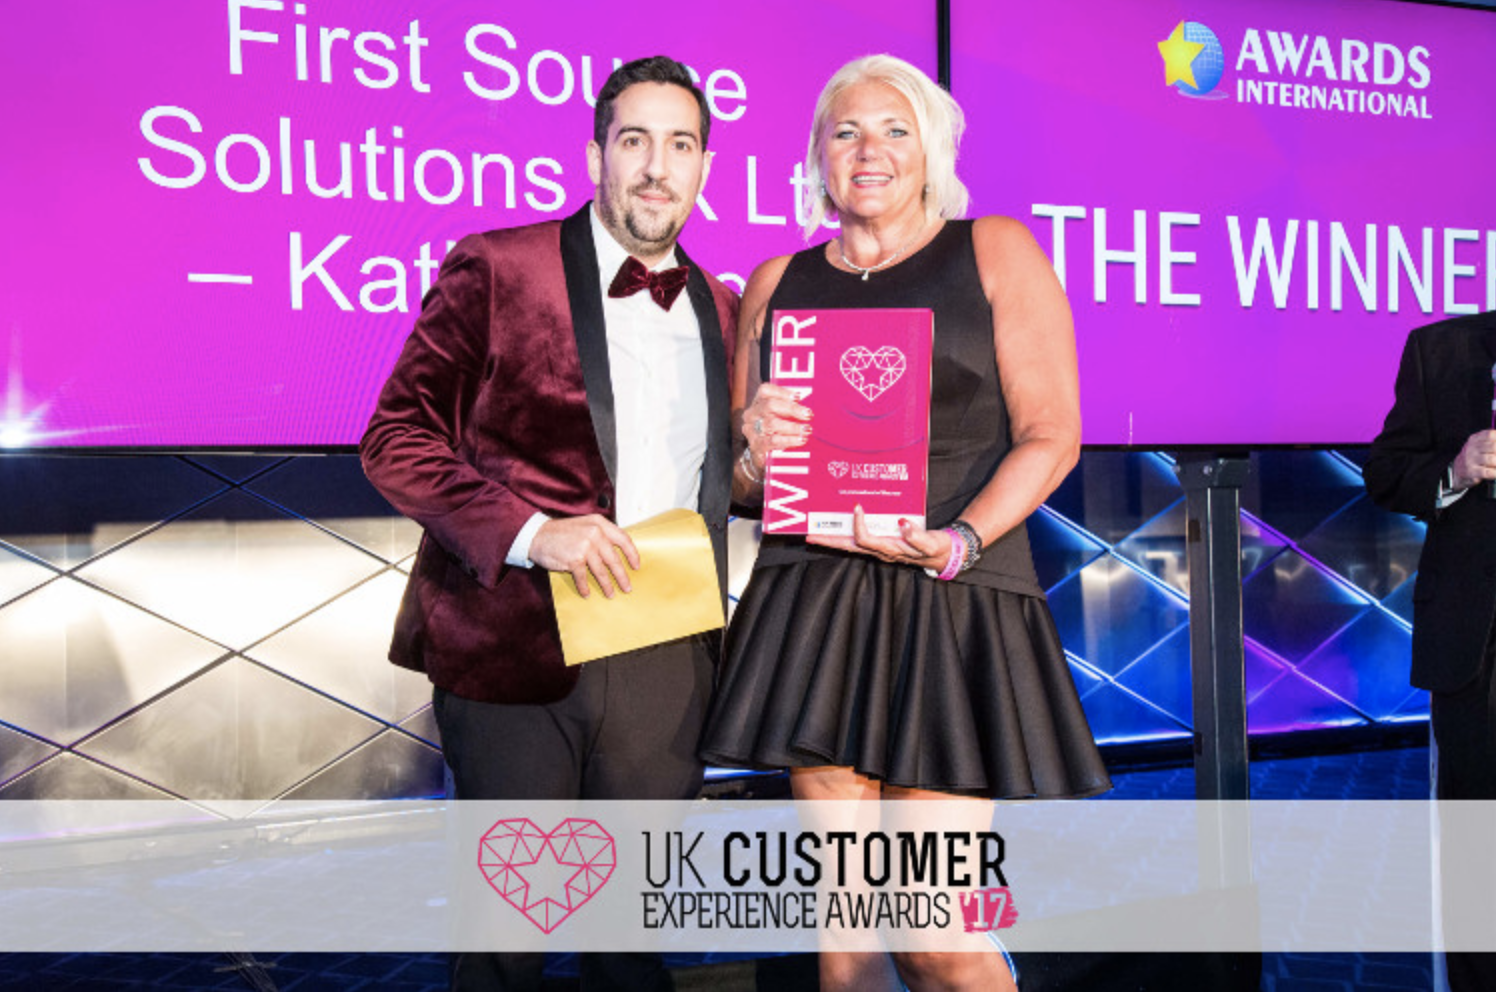 Yiannis Maos Customer Experience Award